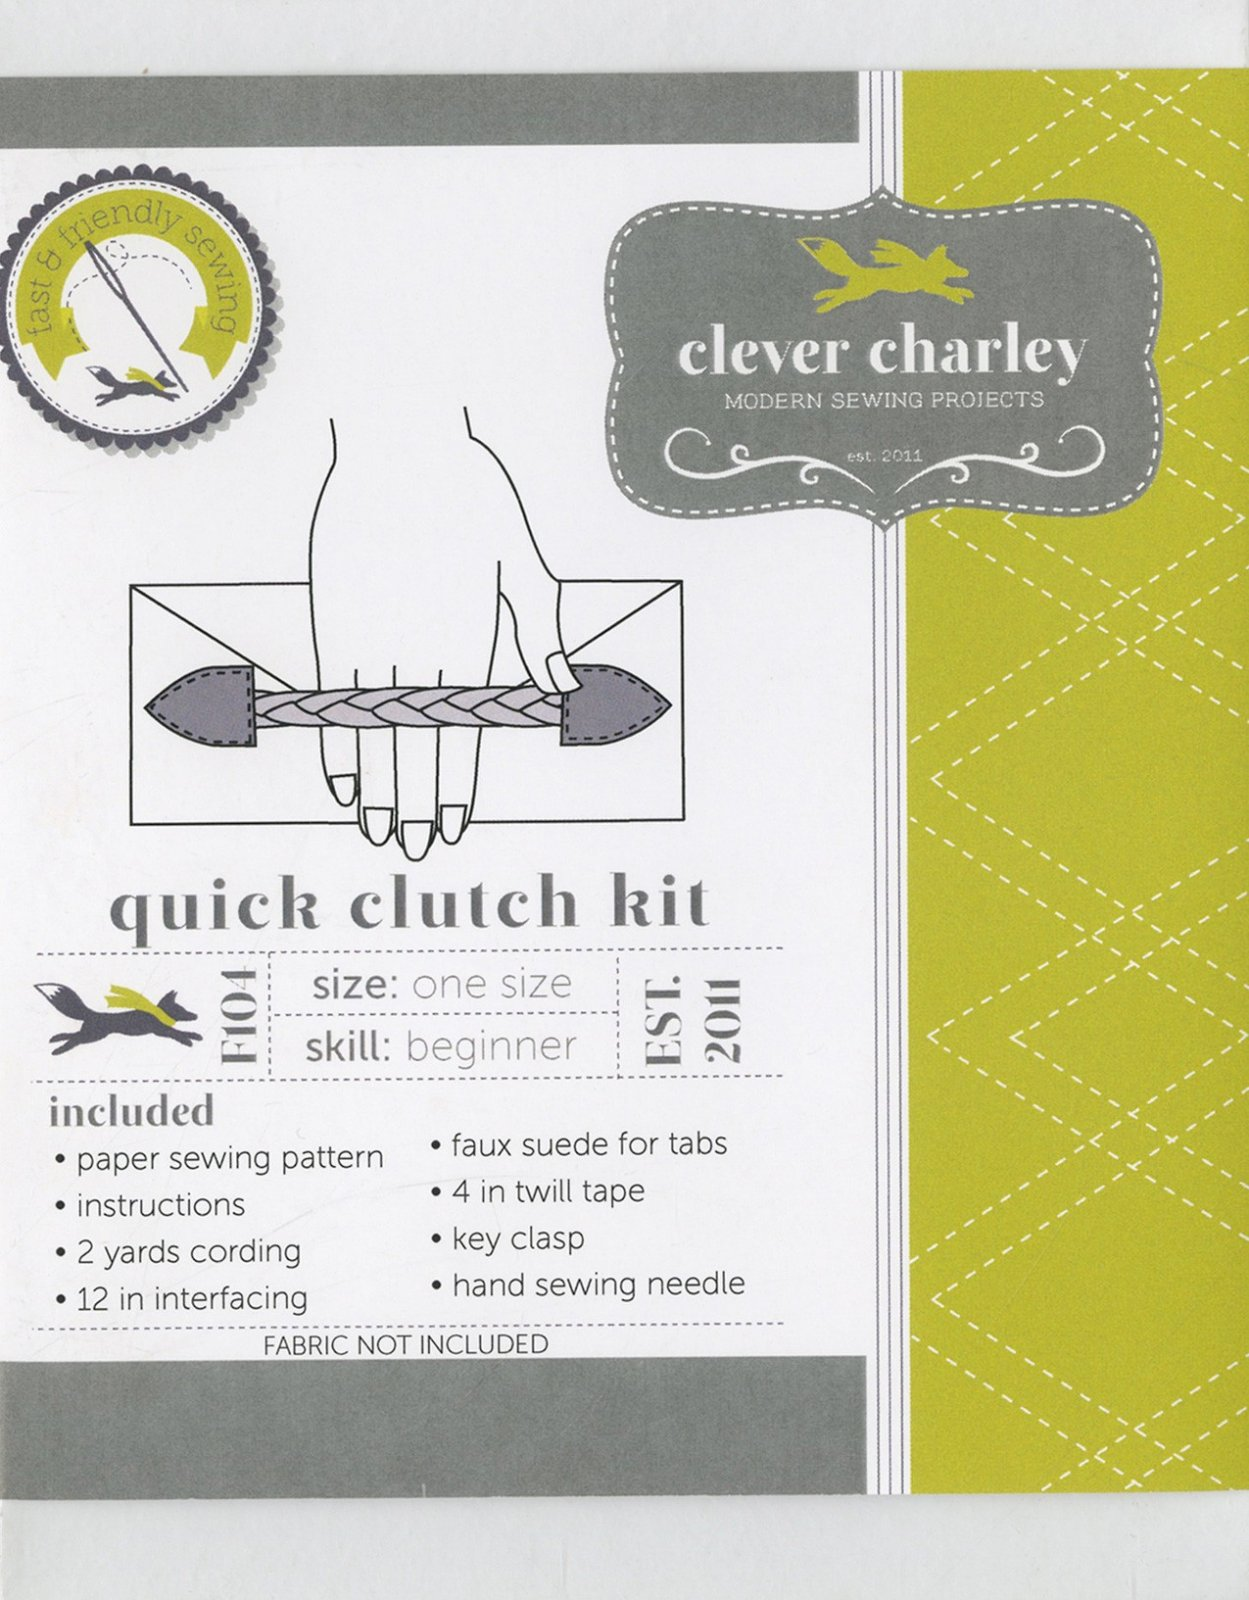 Sewing Kit Quick Clutch